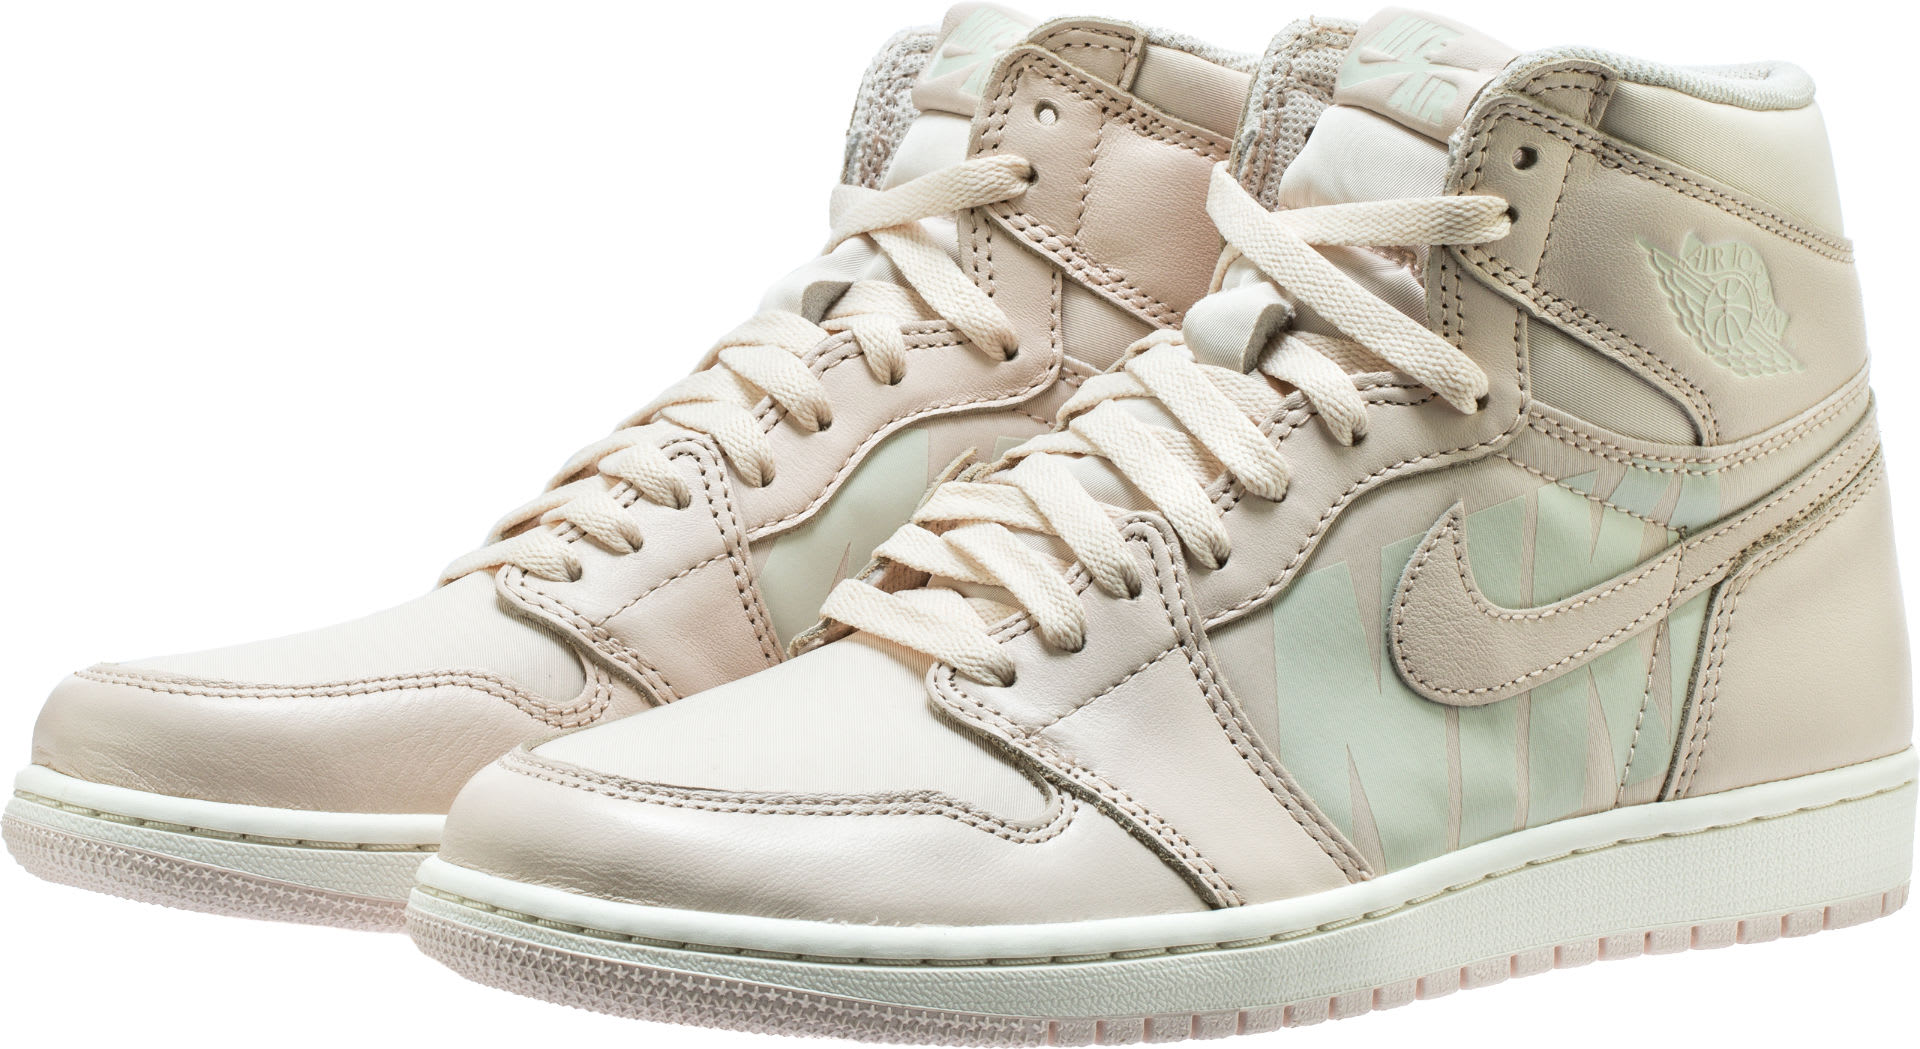 Air Jordan 1 High Guava Ice Sail Release Date 555088-801 Front